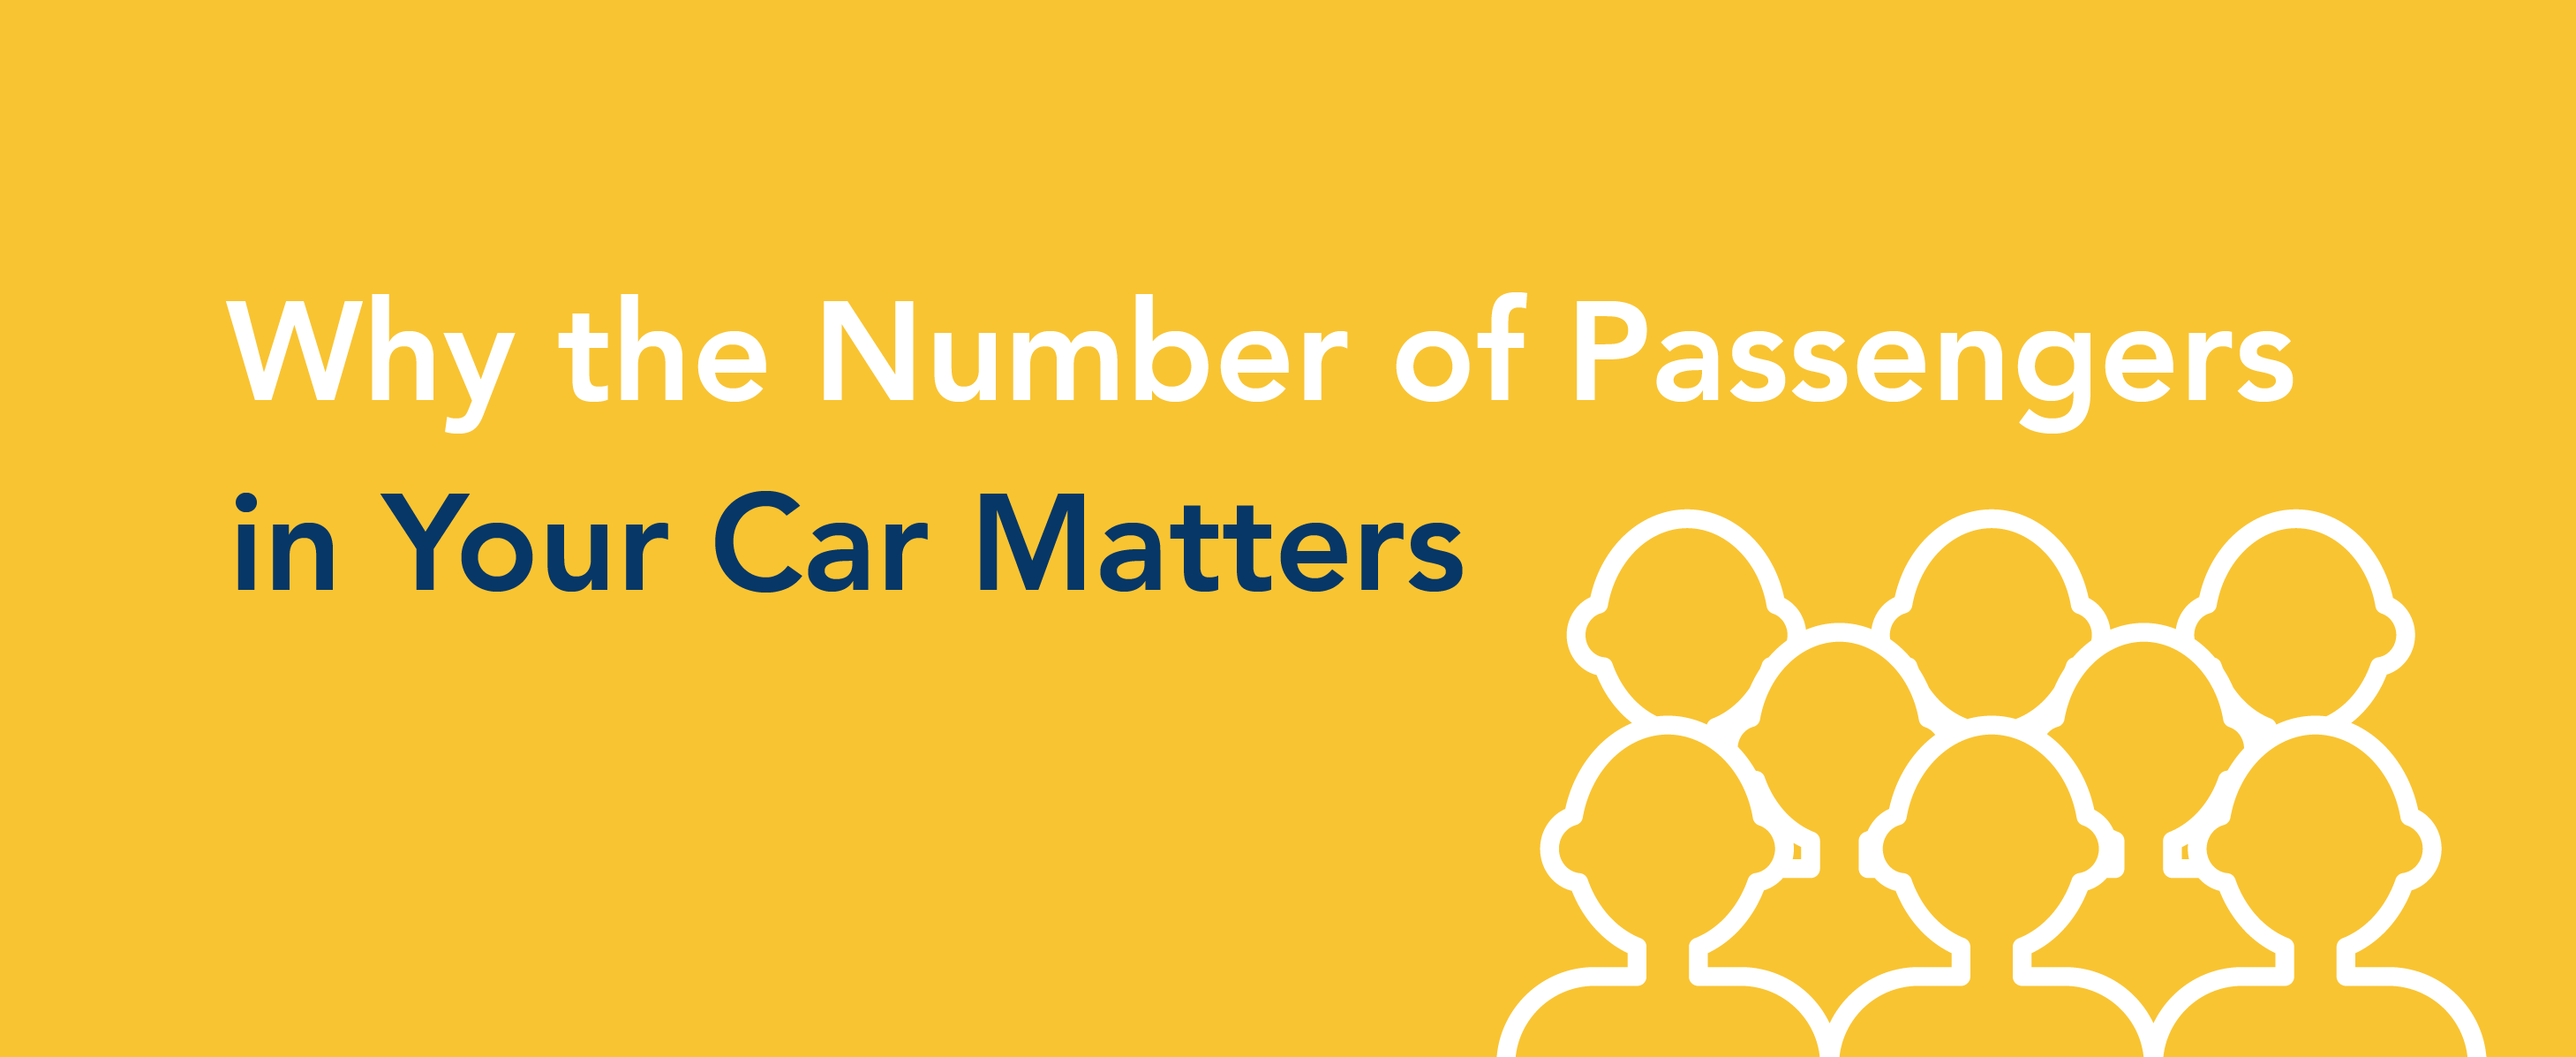 Why the number of passengers in your car matters.